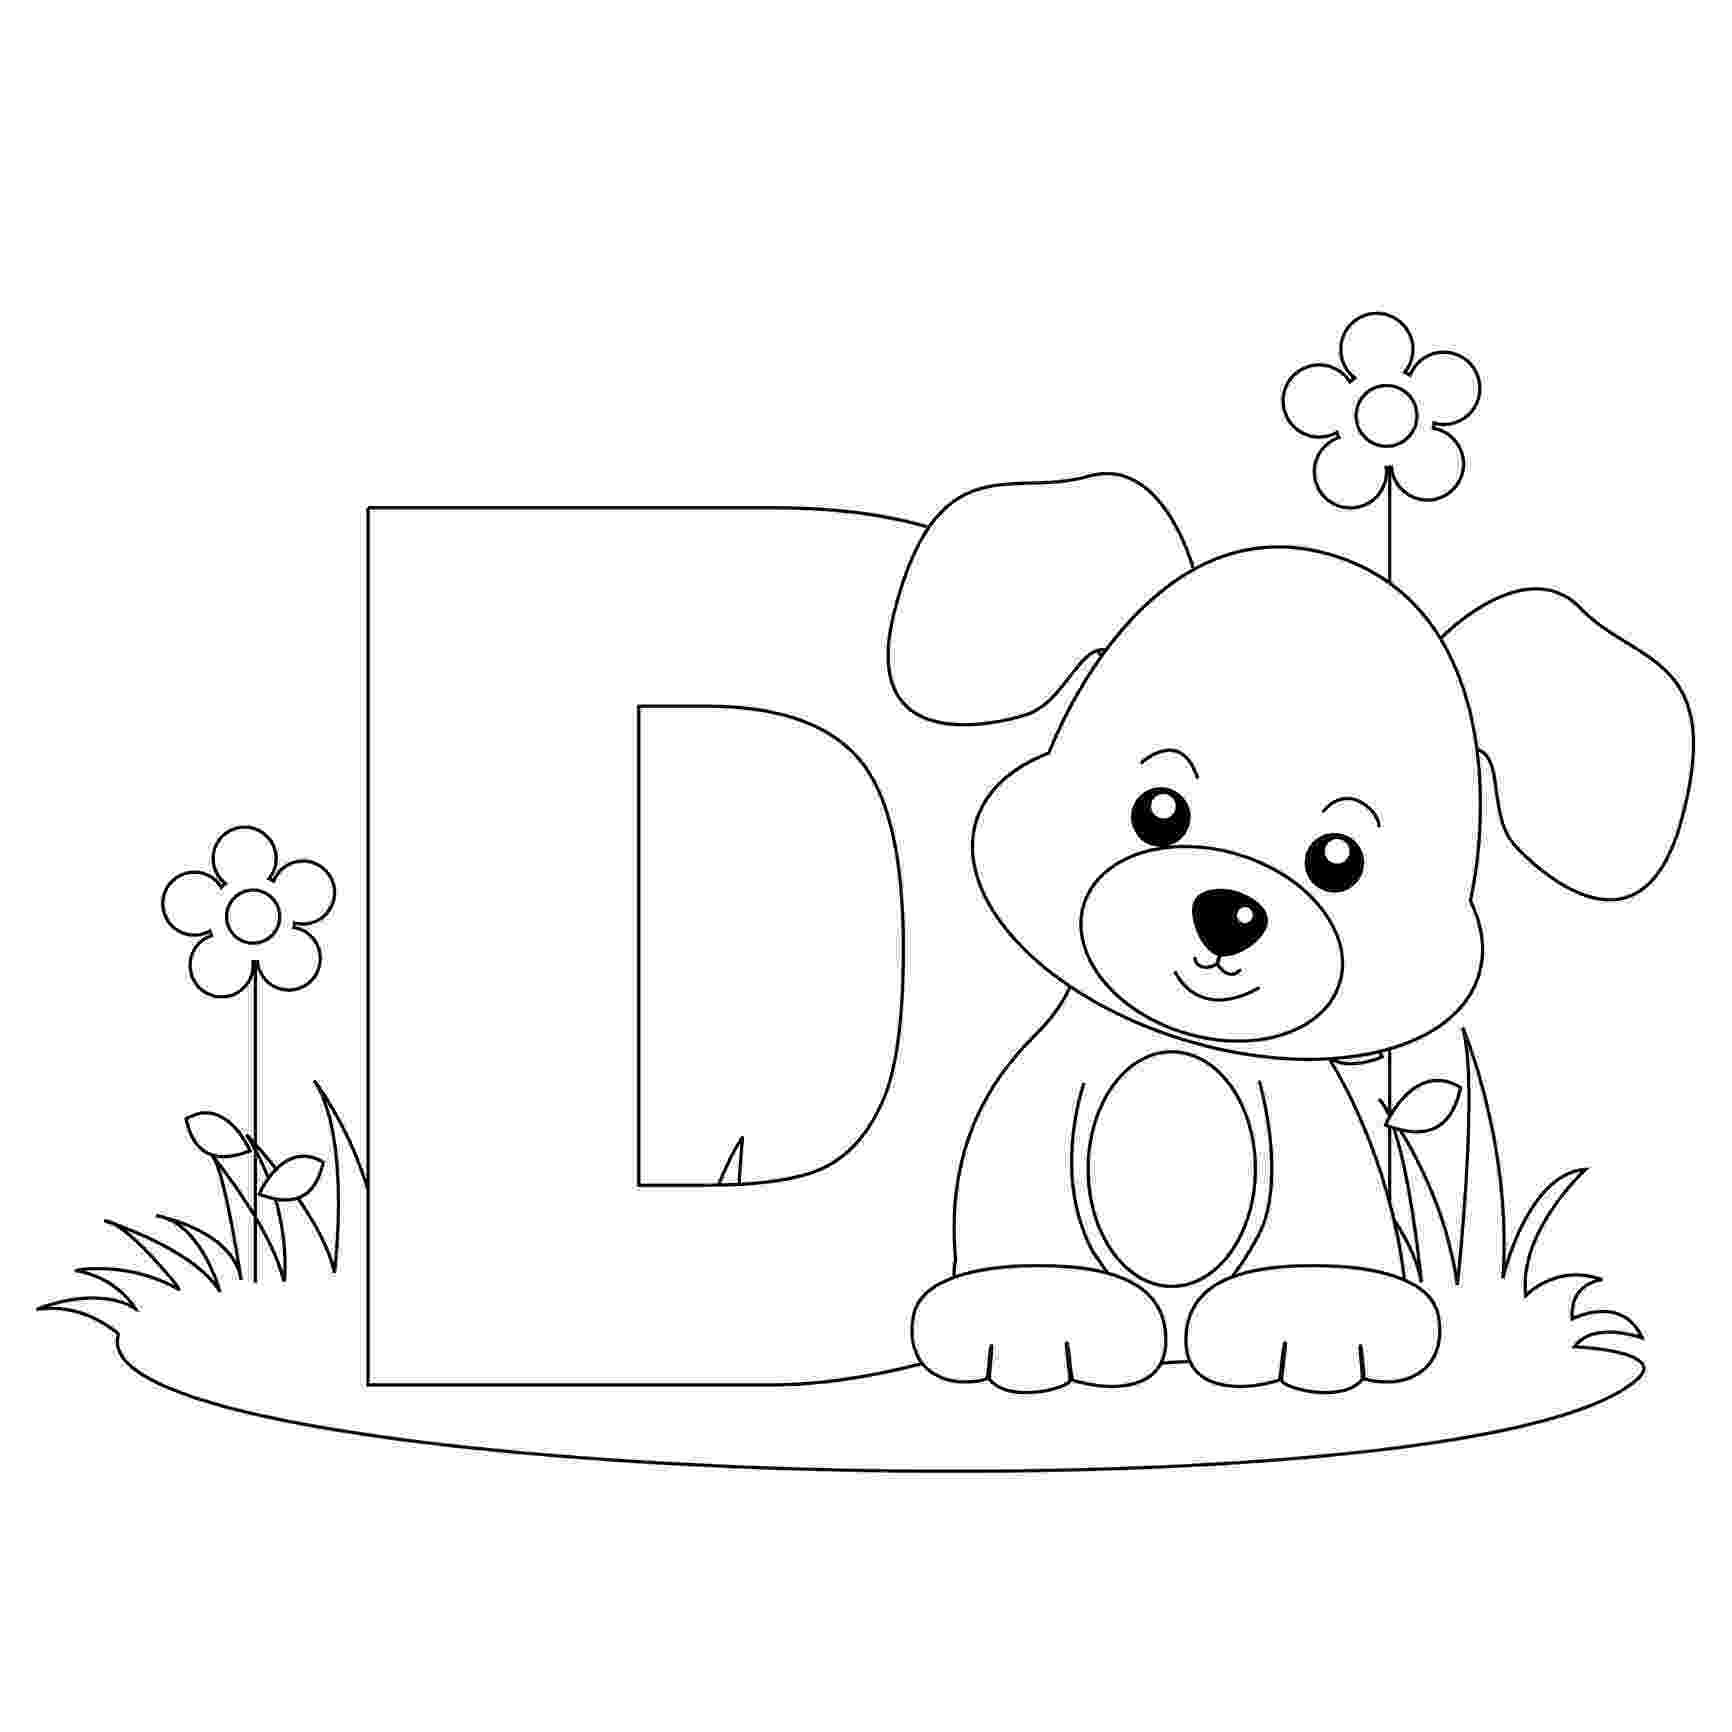 alphabet coloring free printable alphabet coloring pages for kids best coloring alphabet 1 6